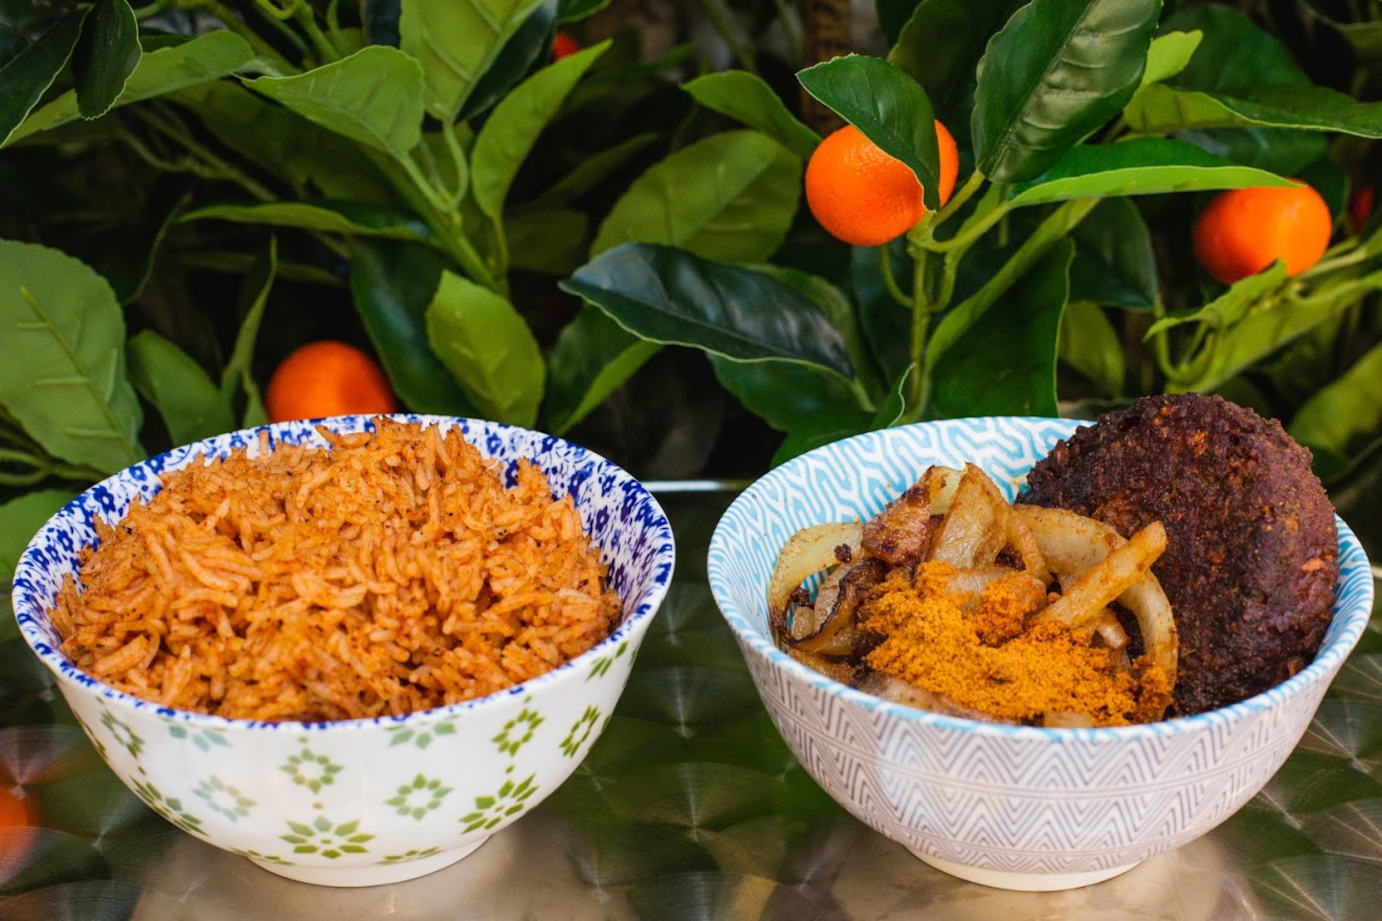 Rice and mixed dish with meat and vegetables